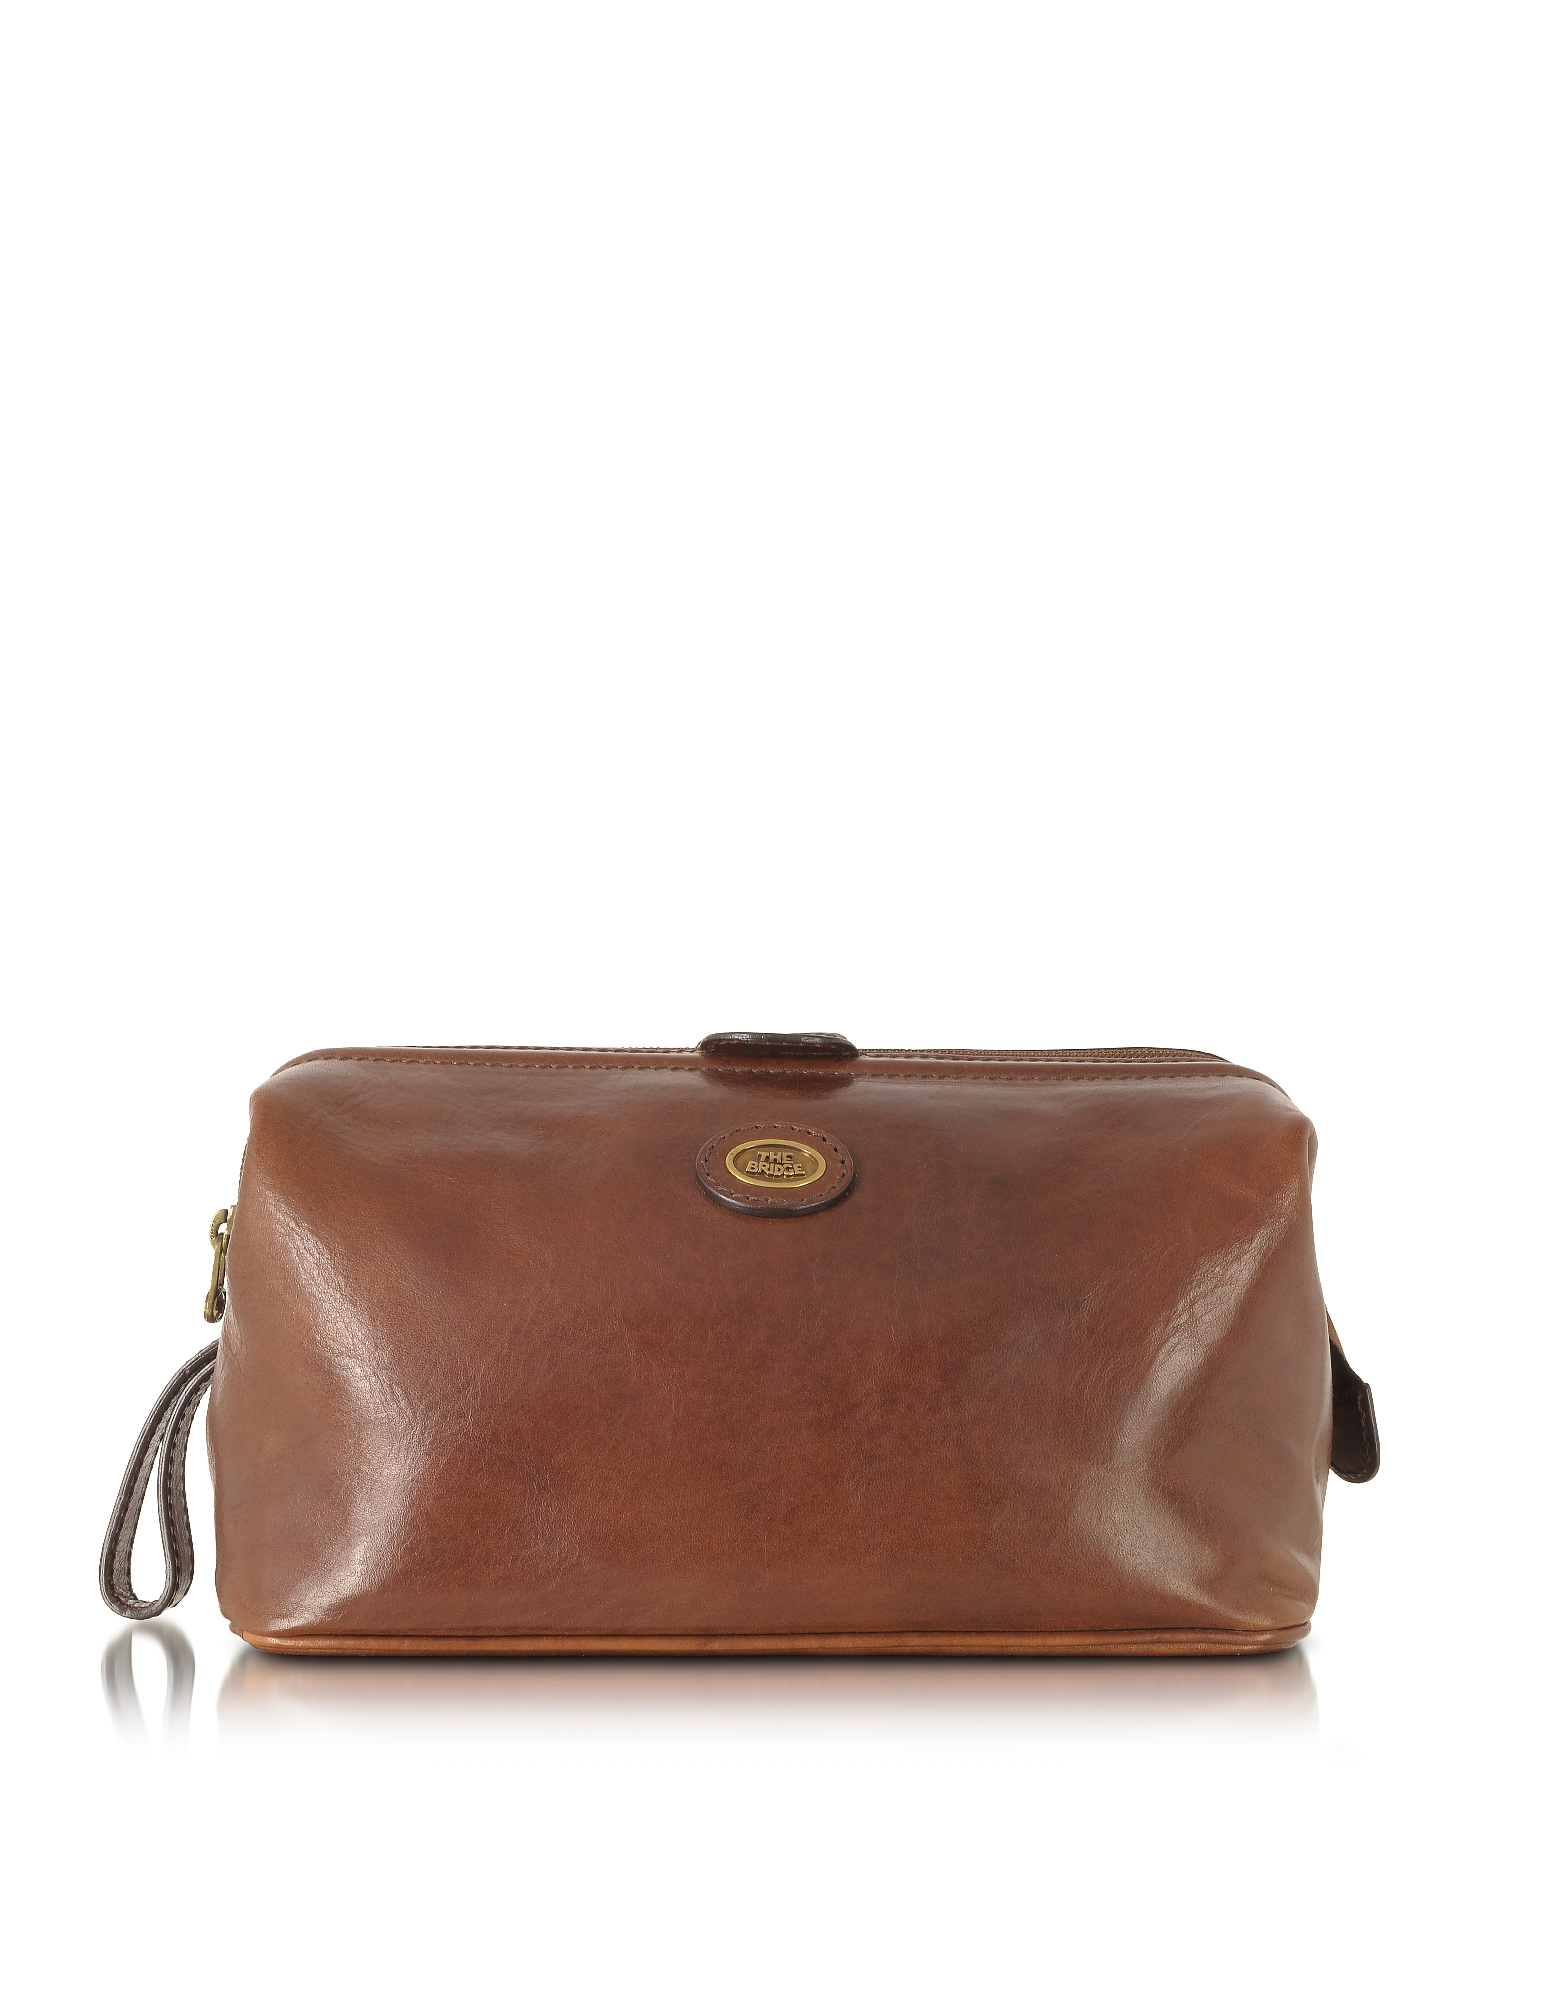 The Bridge Travel Bags, Story Viaggio Marrone Leather Beauty Case